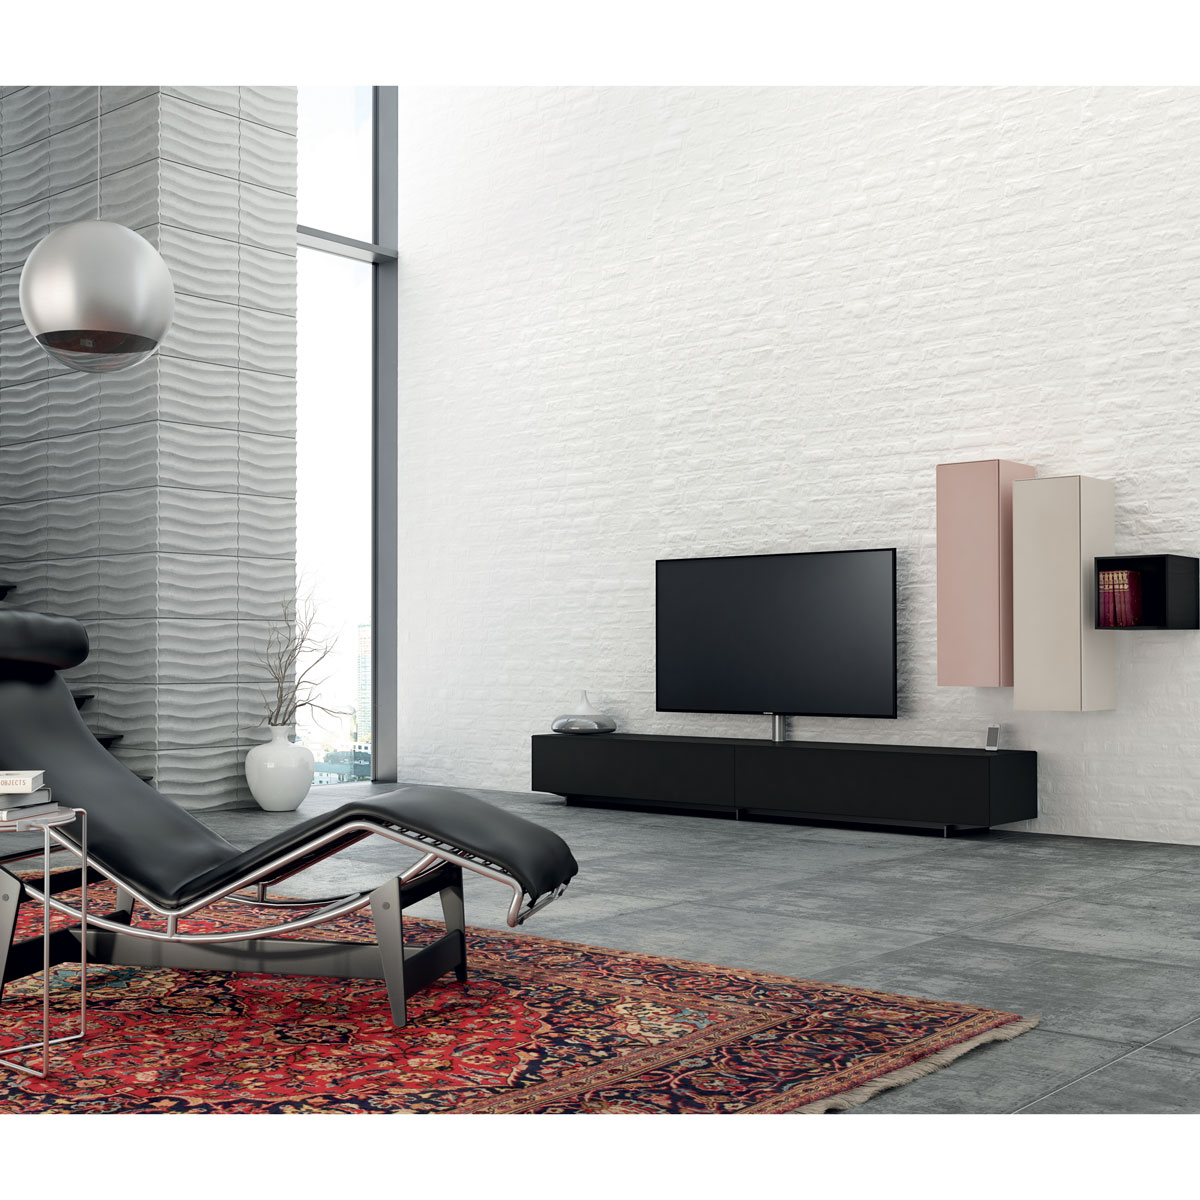 tv m bel fernsehm bel m bel f r lcd tv plasma m bel bei hifi tv seite 1. Black Bedroom Furniture Sets. Home Design Ideas